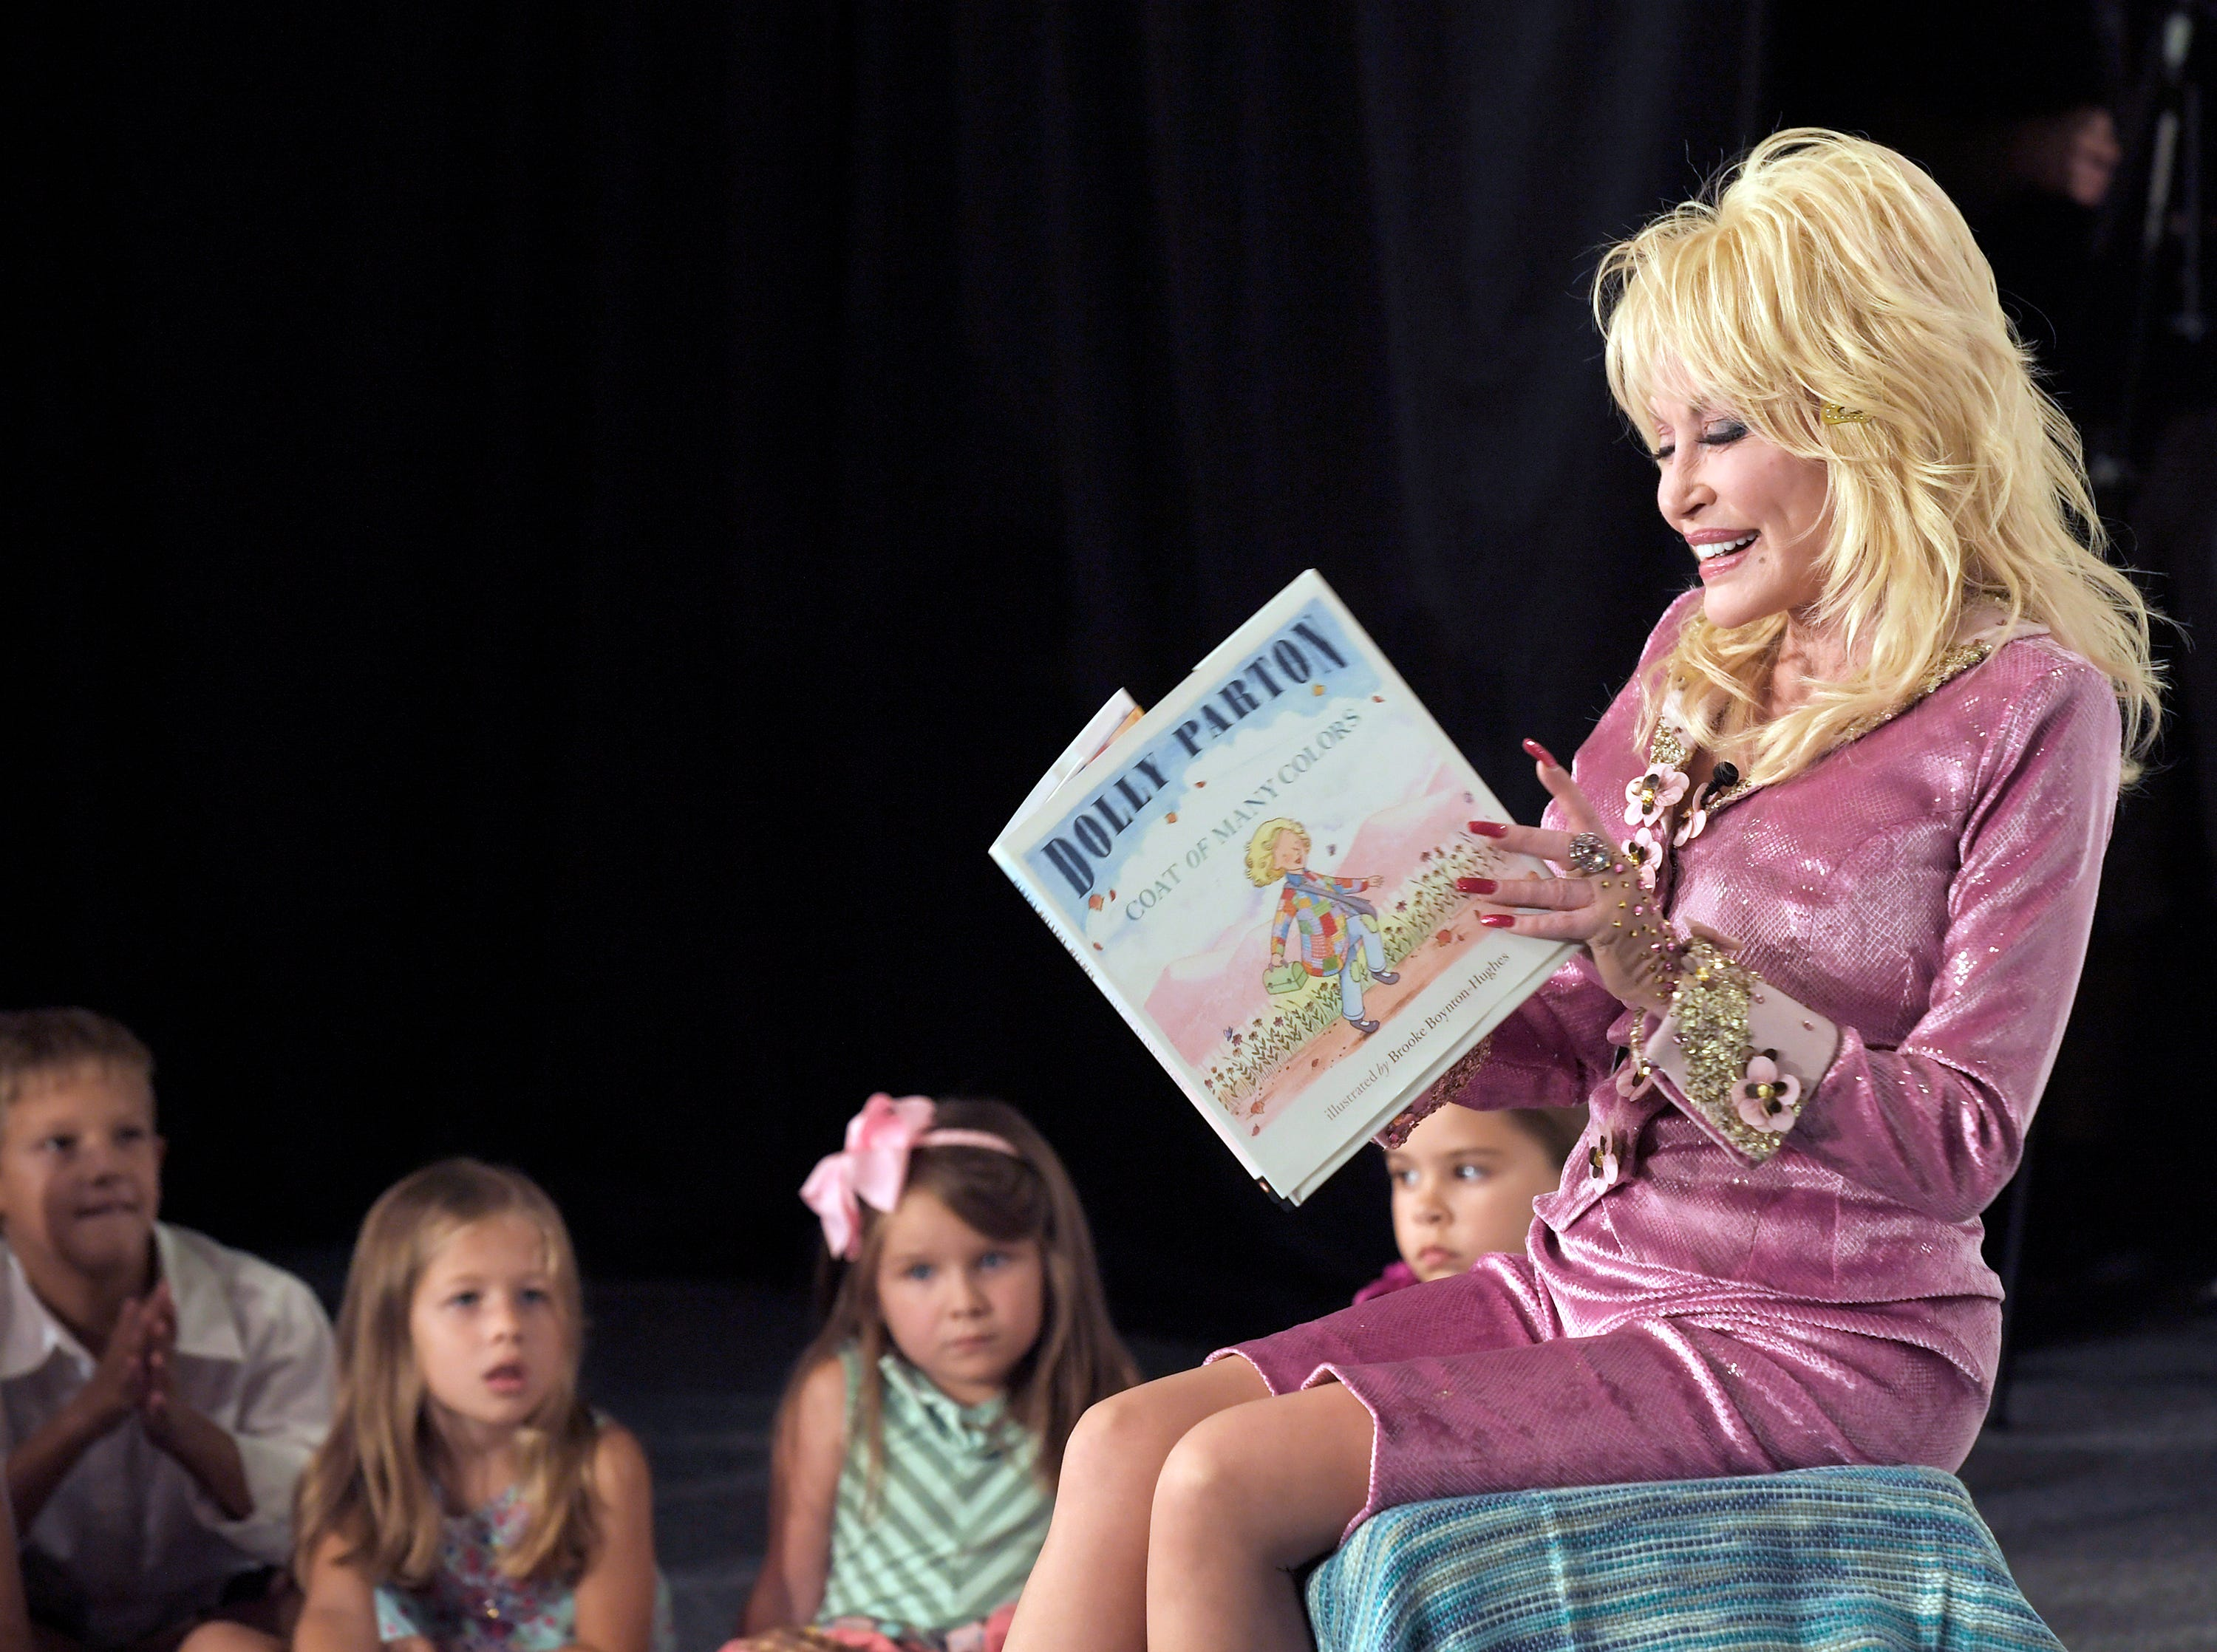 """Dolly Parton reads her children's book, """"Coat of Many Colors,"""" to a group of kids during an event announcing her first children's album, """"I Believe In You,"""" in 2017."""